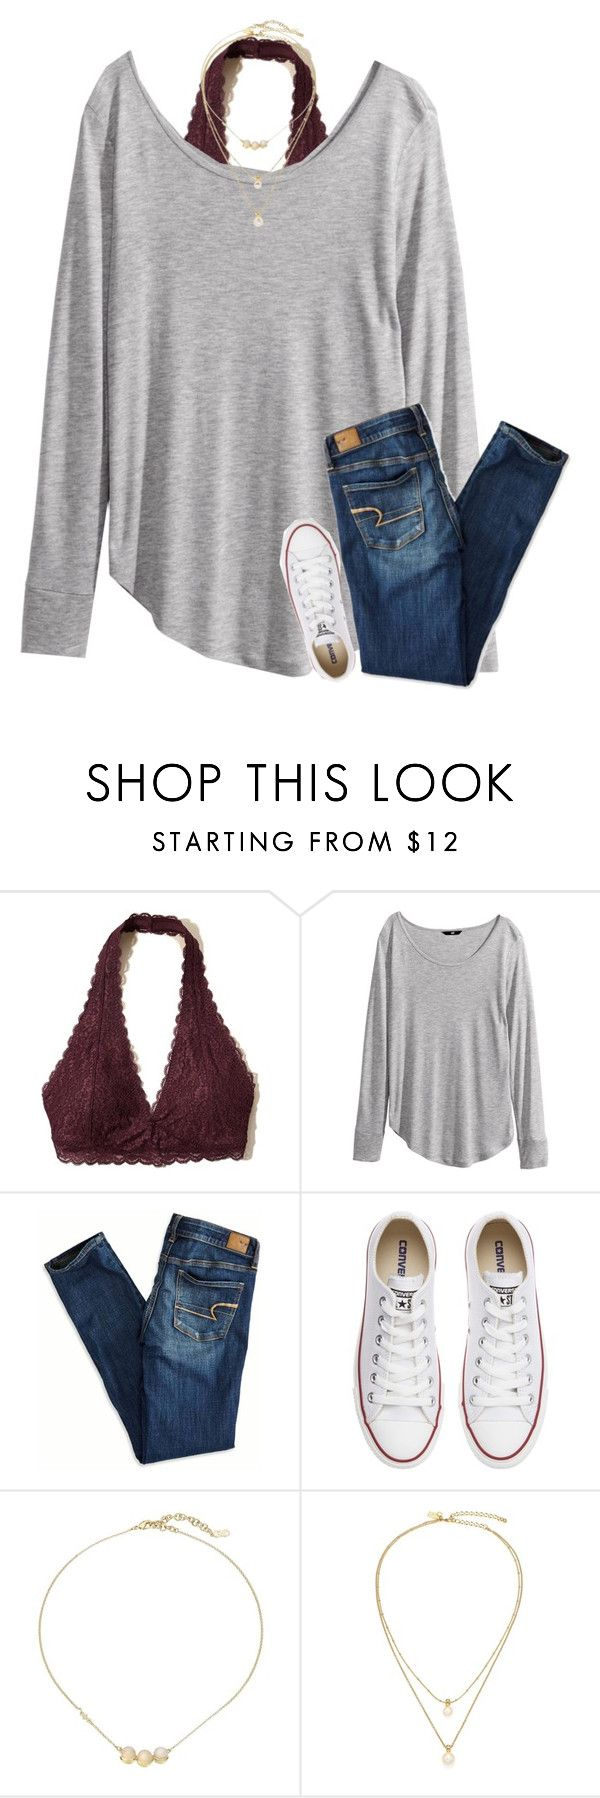 """{I think polyvore hates h&m... whenever I try to search for it, it says no results}"" by southerngirl03 ❤ liked on Polyvore featuring Hollister Co., H&M, American Eagle Outfitters, Converse, Cole Haan and Kate Spade"